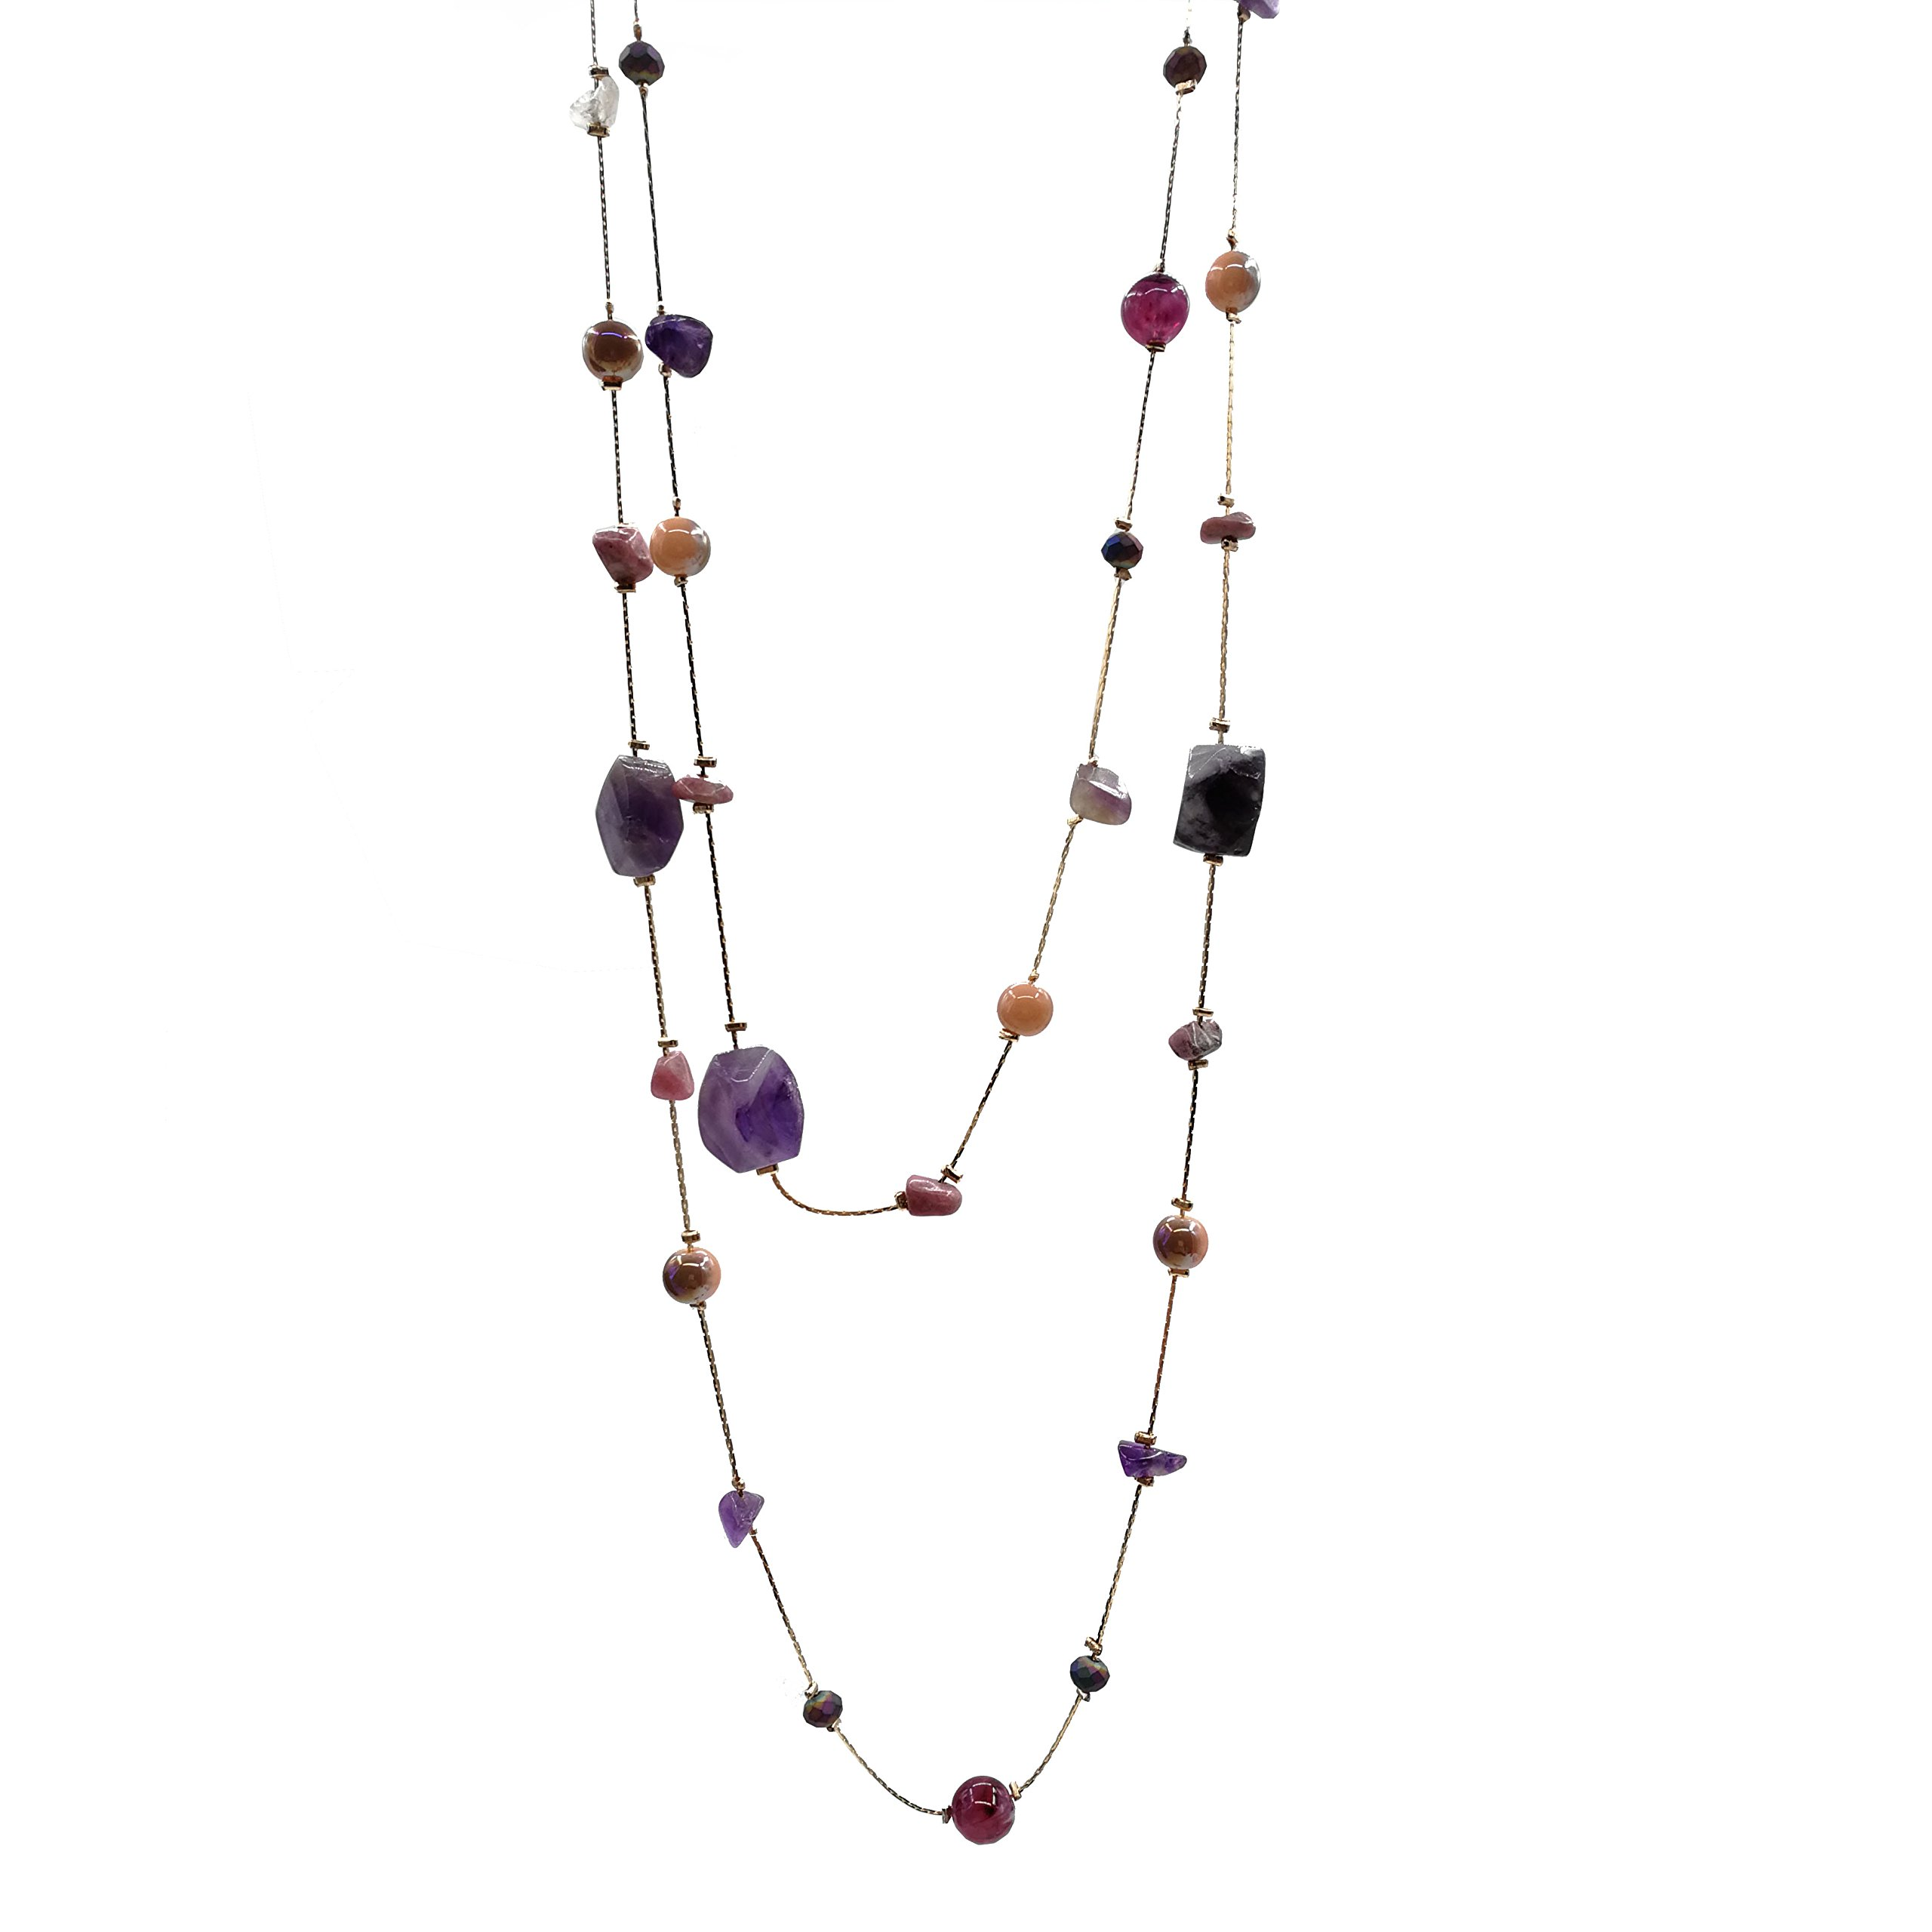 Karen accessories Long Size Irregular Natural Stone Necklace Hand Knotted Charm Bohemian Style Beaded Strand Necklace (Purple stone)